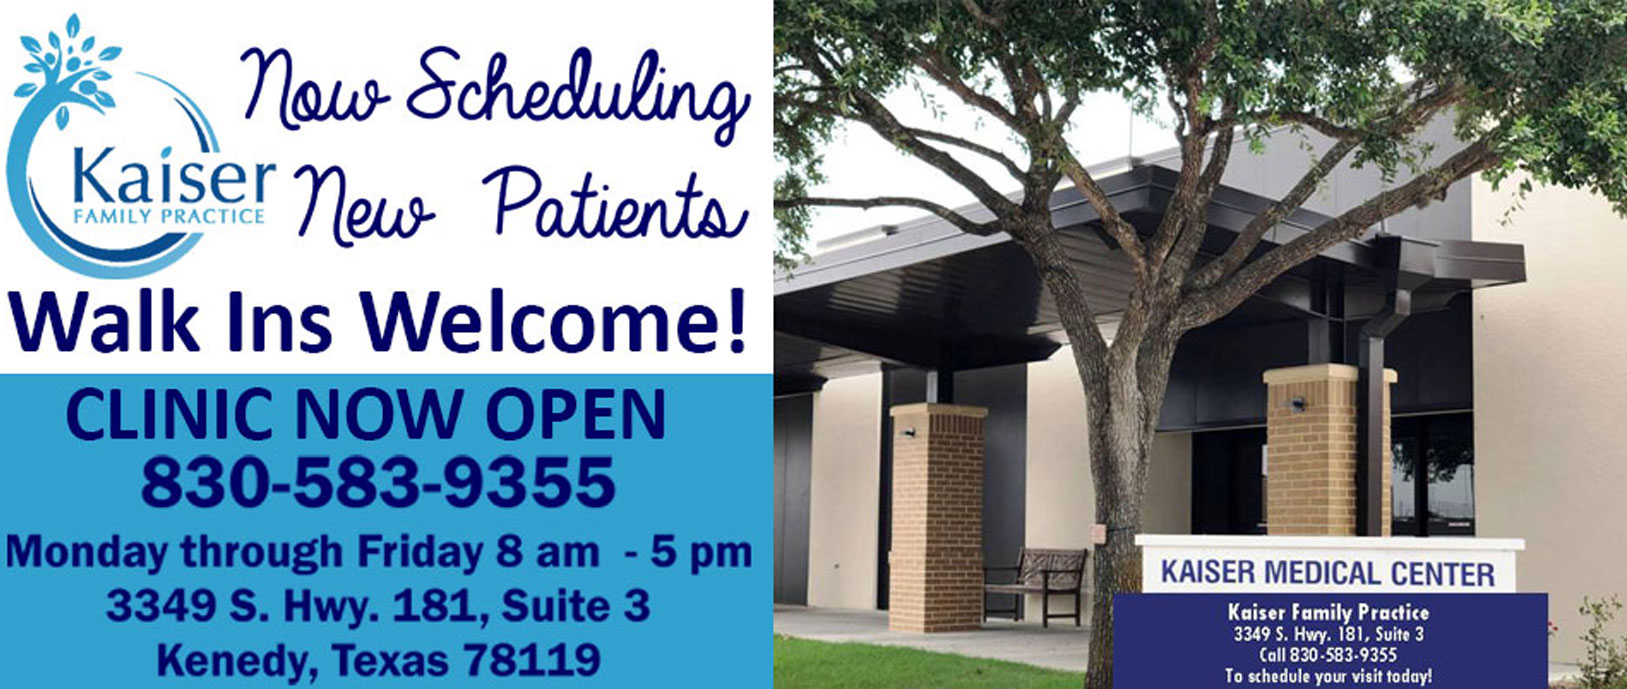 Now Scheduling new patients. Walk-ins Welcome! Clinic now open 830-583-9355. Monday through Friday 8am- 5pm 3349 S. Hwy 81, Suite 3 Kenedy, Texas 78119, with a picture of the Clinic on the right side of the banner